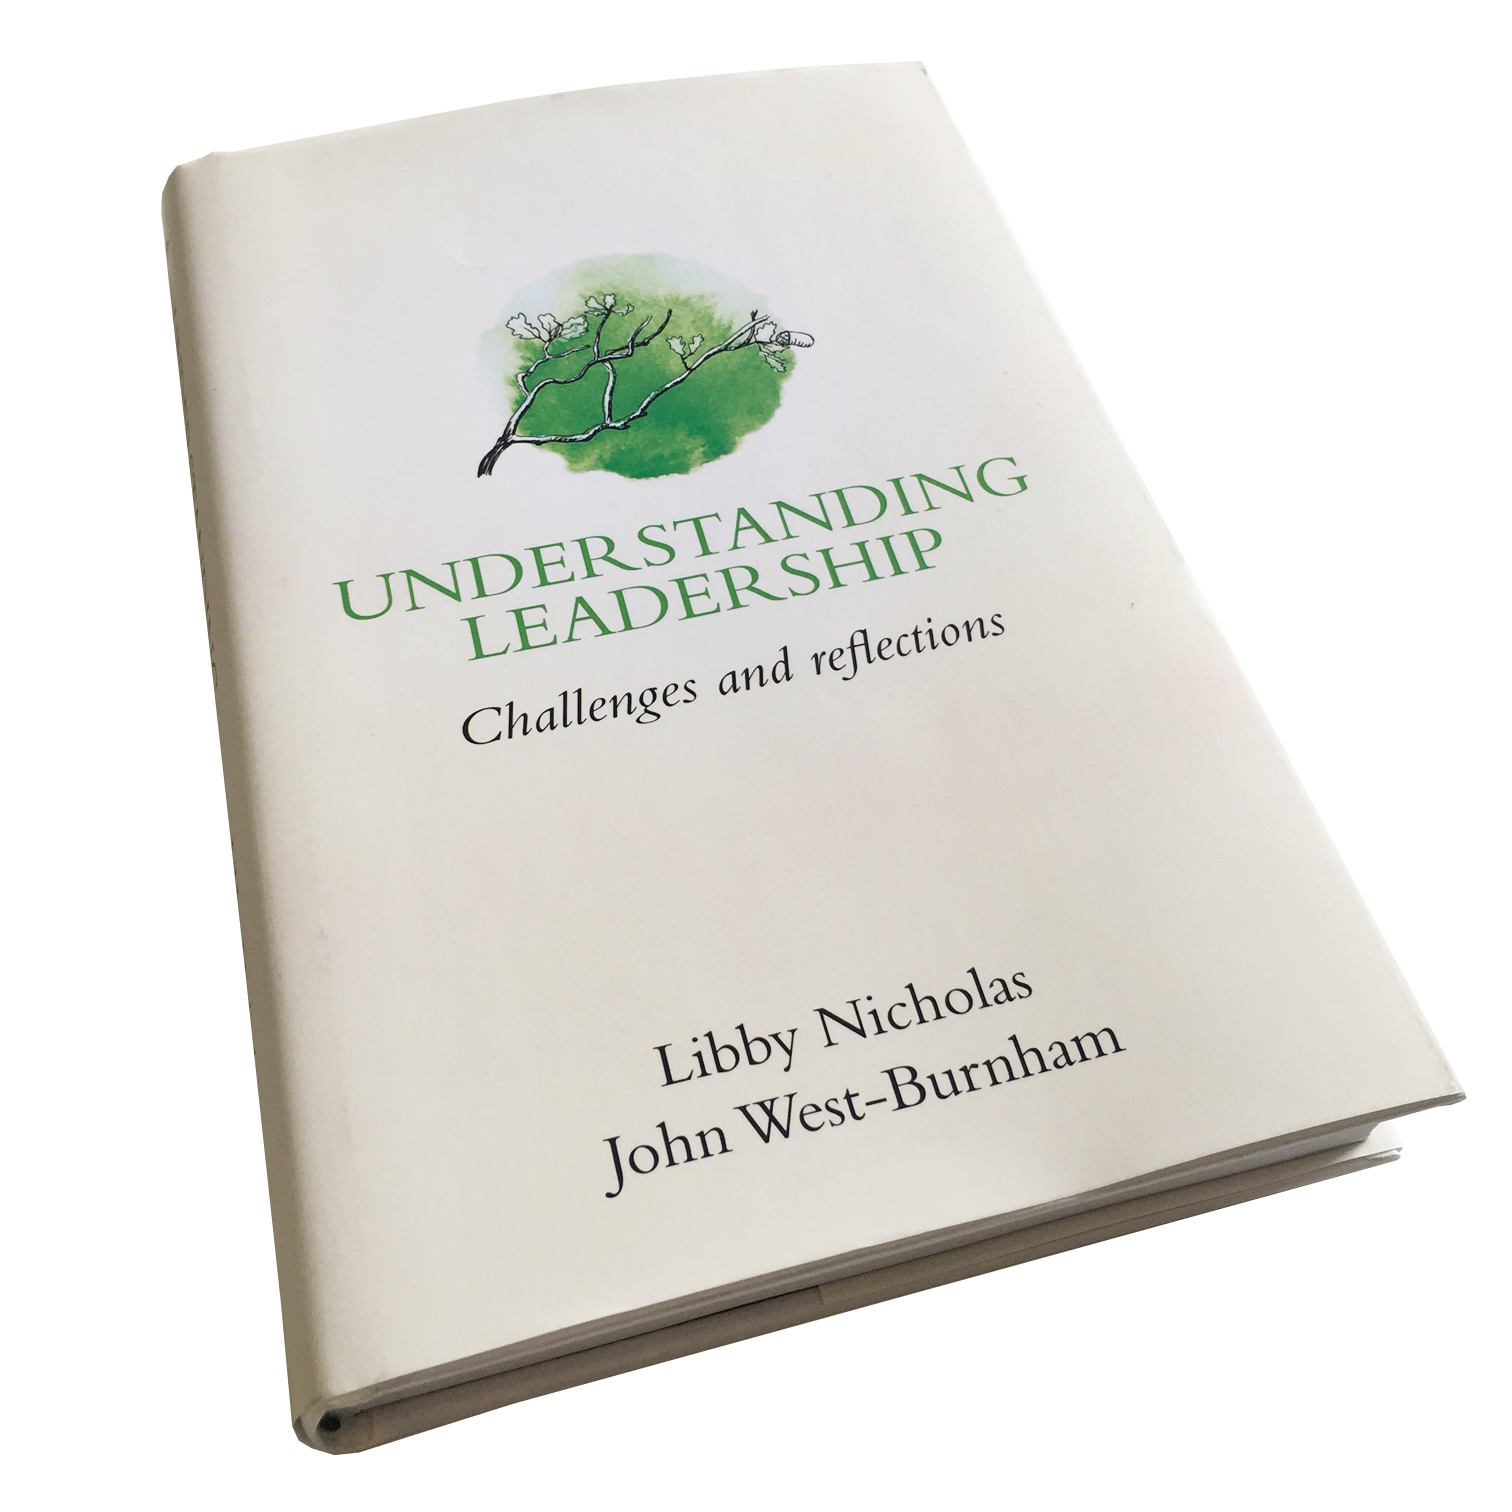 book review understanding leadership by john west burnham and john west burnham and libby nicholas are what i would describe as big players in the education scene a career spanning age groups leadership positions